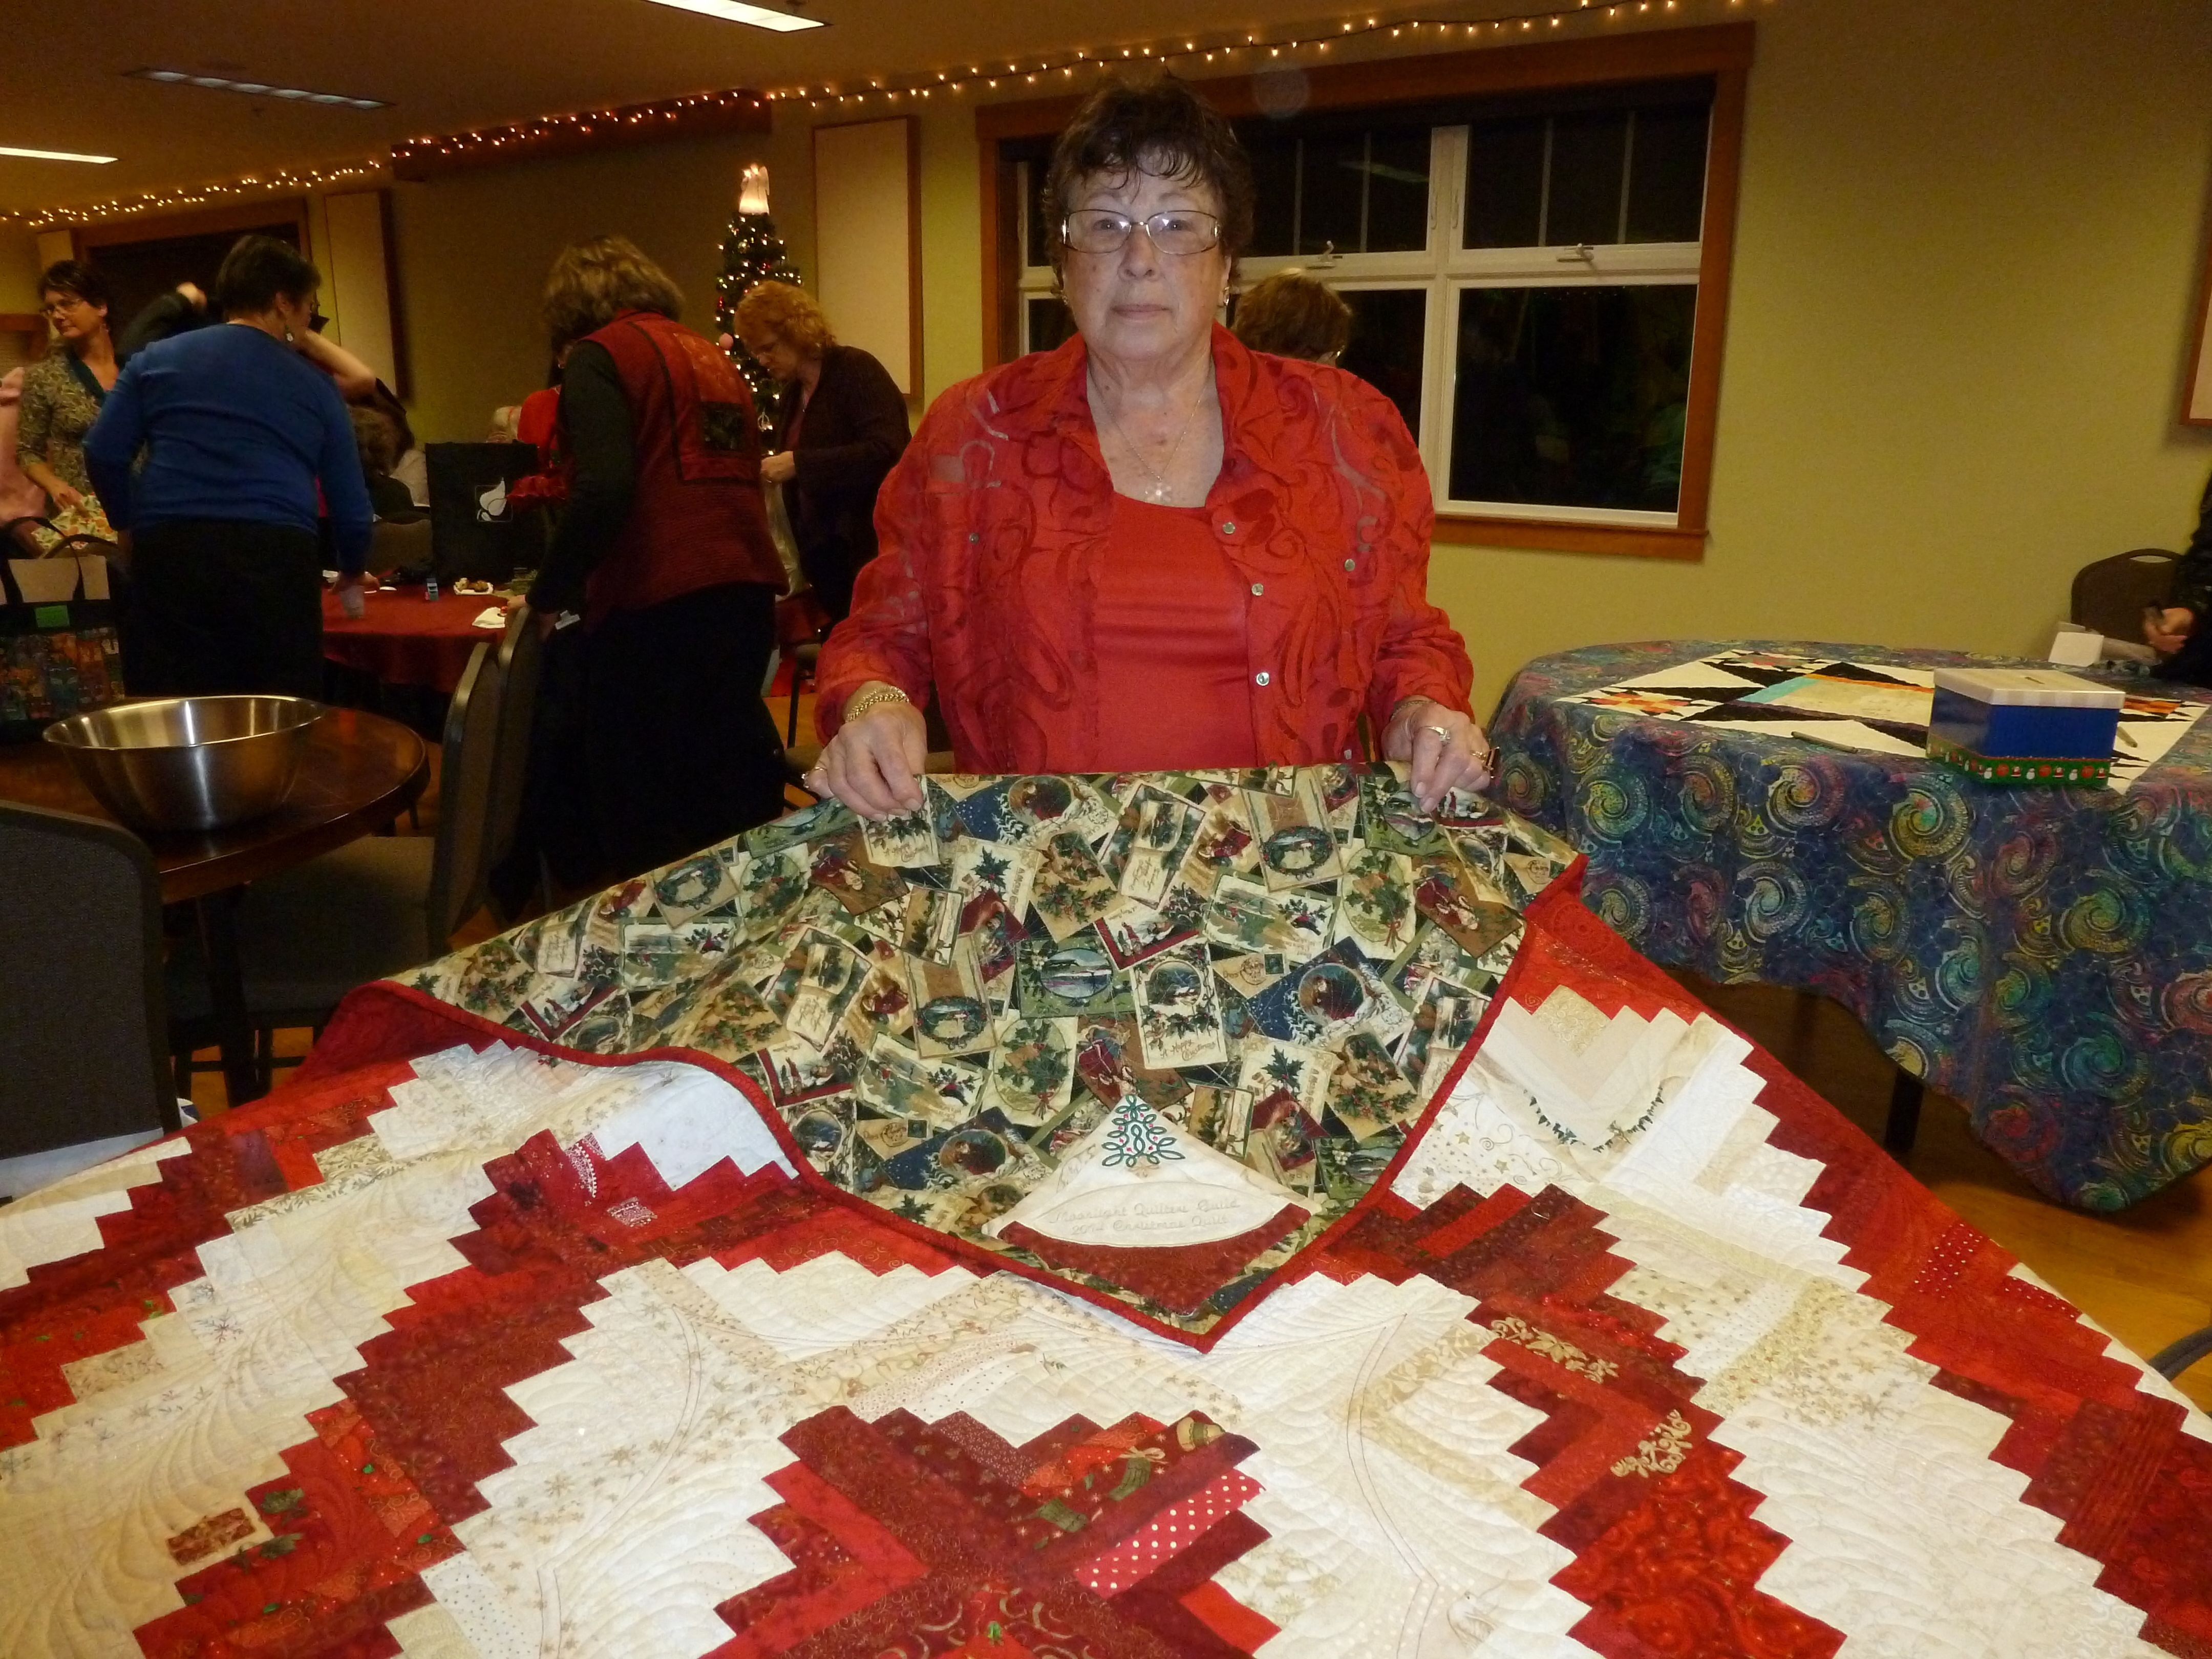 Rose T. Won the Christmas Quilt!